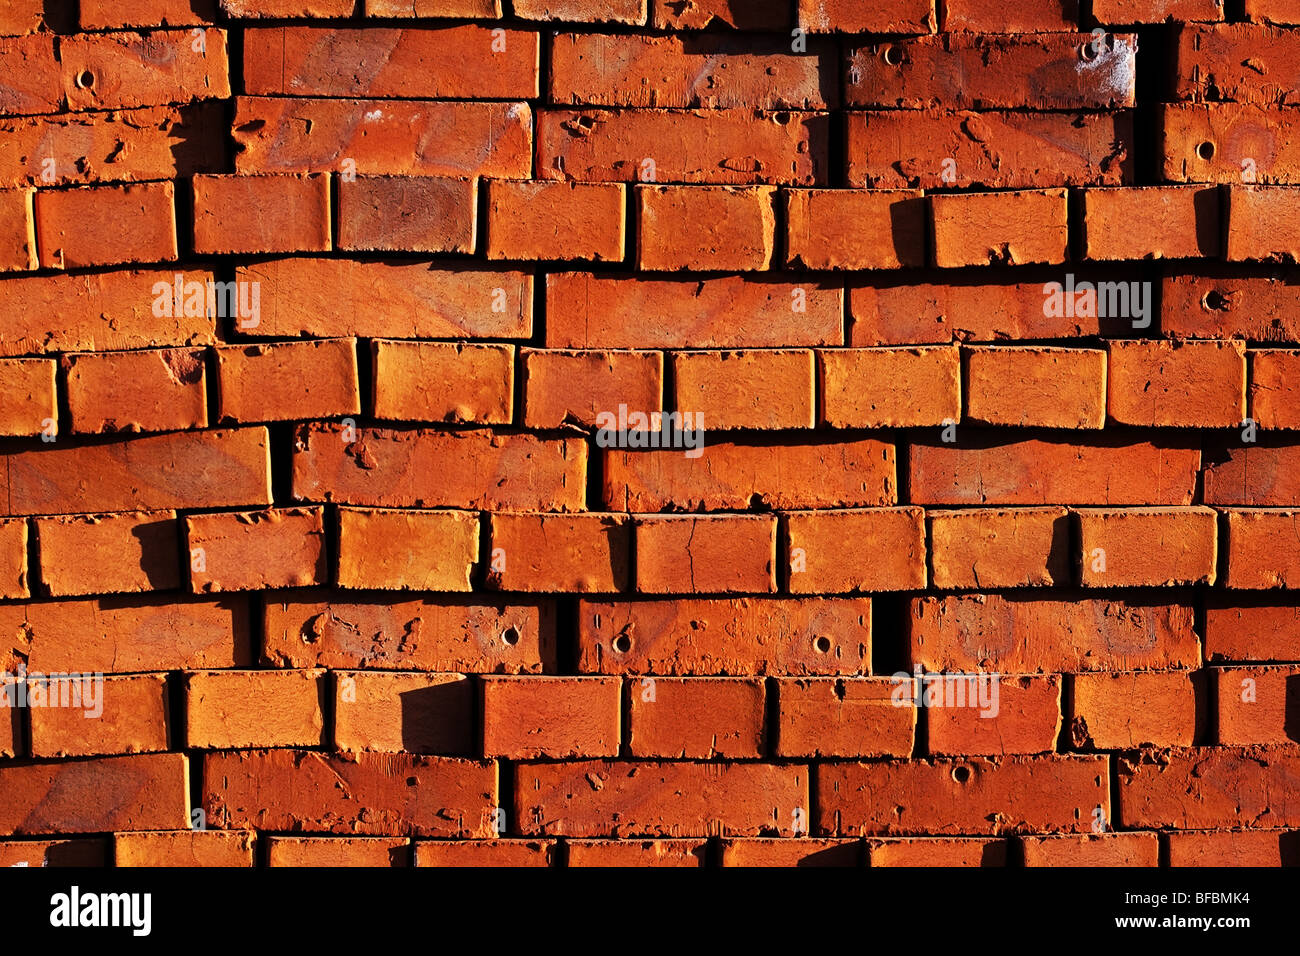 Red bricks background. - Stock Image